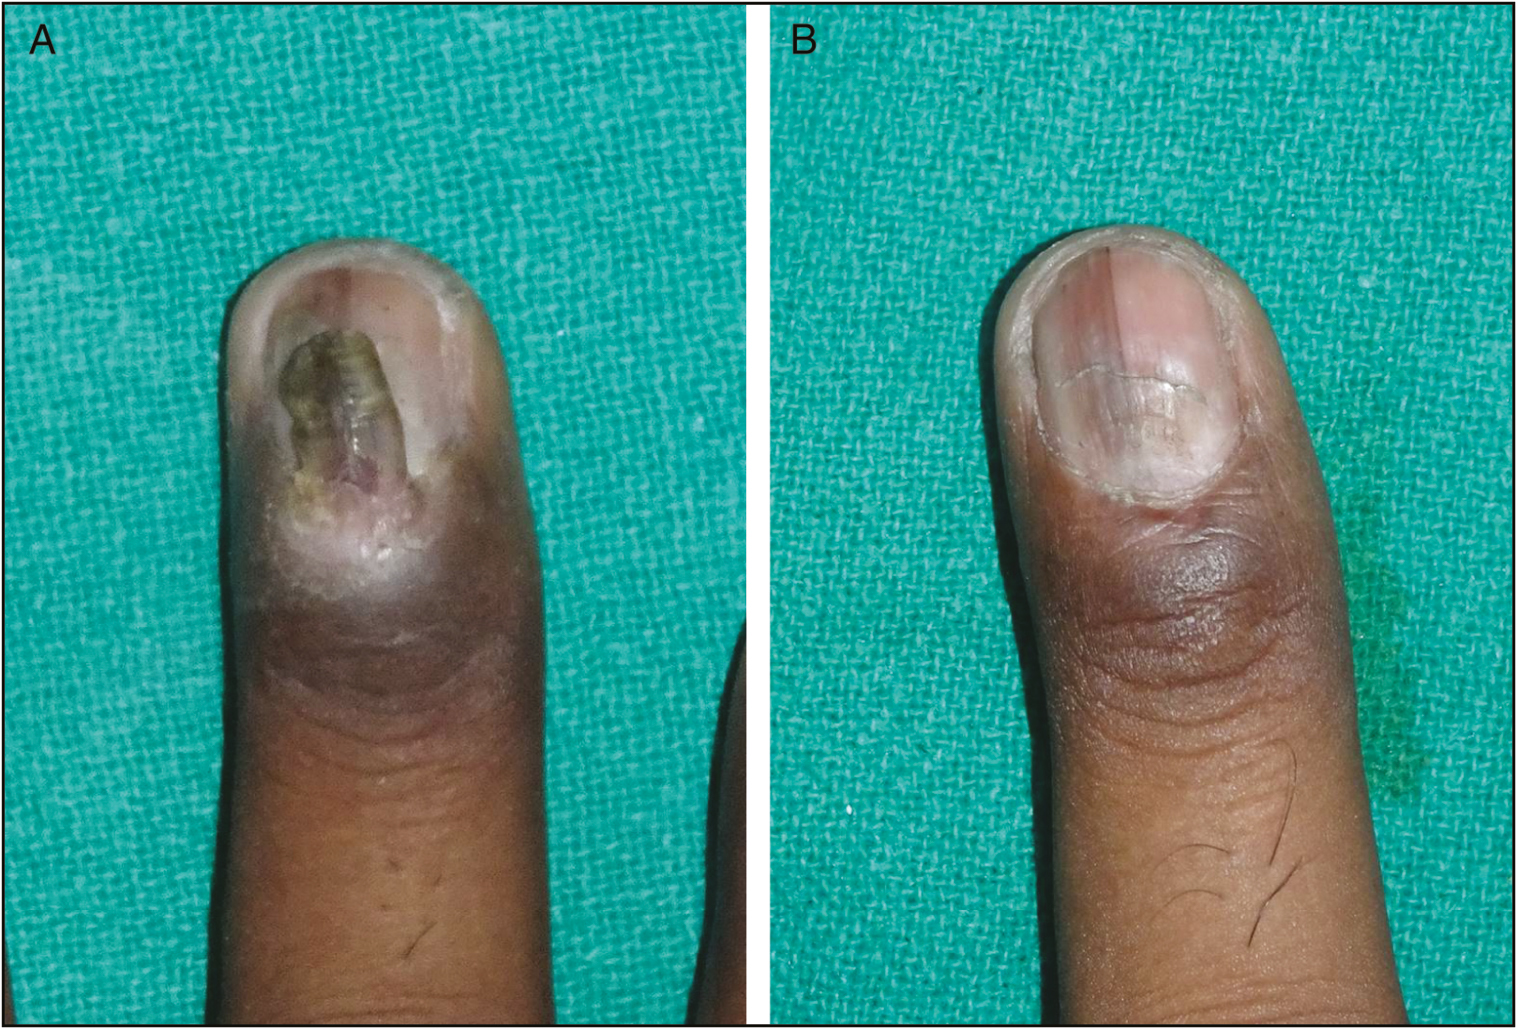 Figure 1: (A) A deformed ectopic nail arising over a normal nail plate. It was arising from a well-formed pocket within the PNF. The ectopic nail shows discoloration and the underlying plate shows a slight depression. (B) Postoperative outcome at the end of 8 weeks, with a normal but slightly retracted PNF. Note the slow normalization of the nail plate curvature